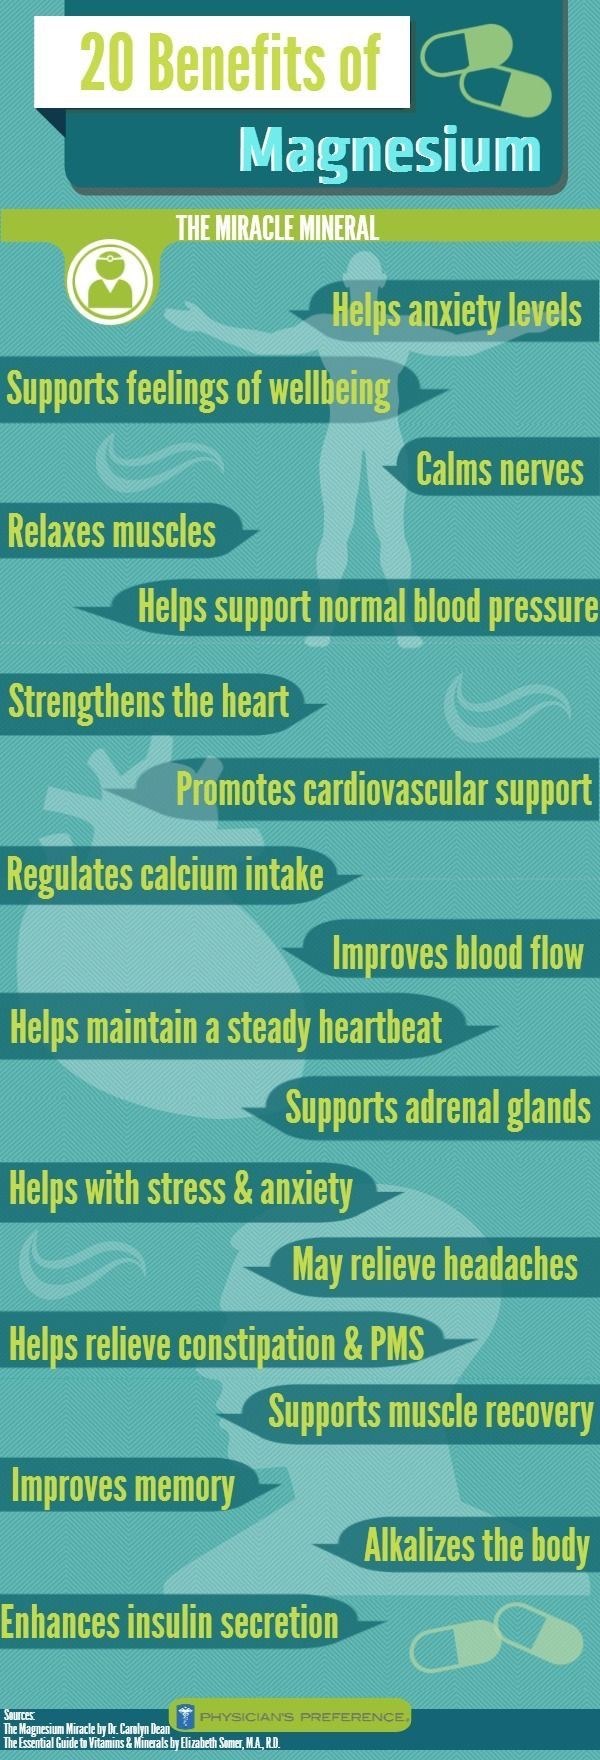 Lacking in magnesium? Did you know this! Bioclense has magnesium to support all these functions! Check it out.